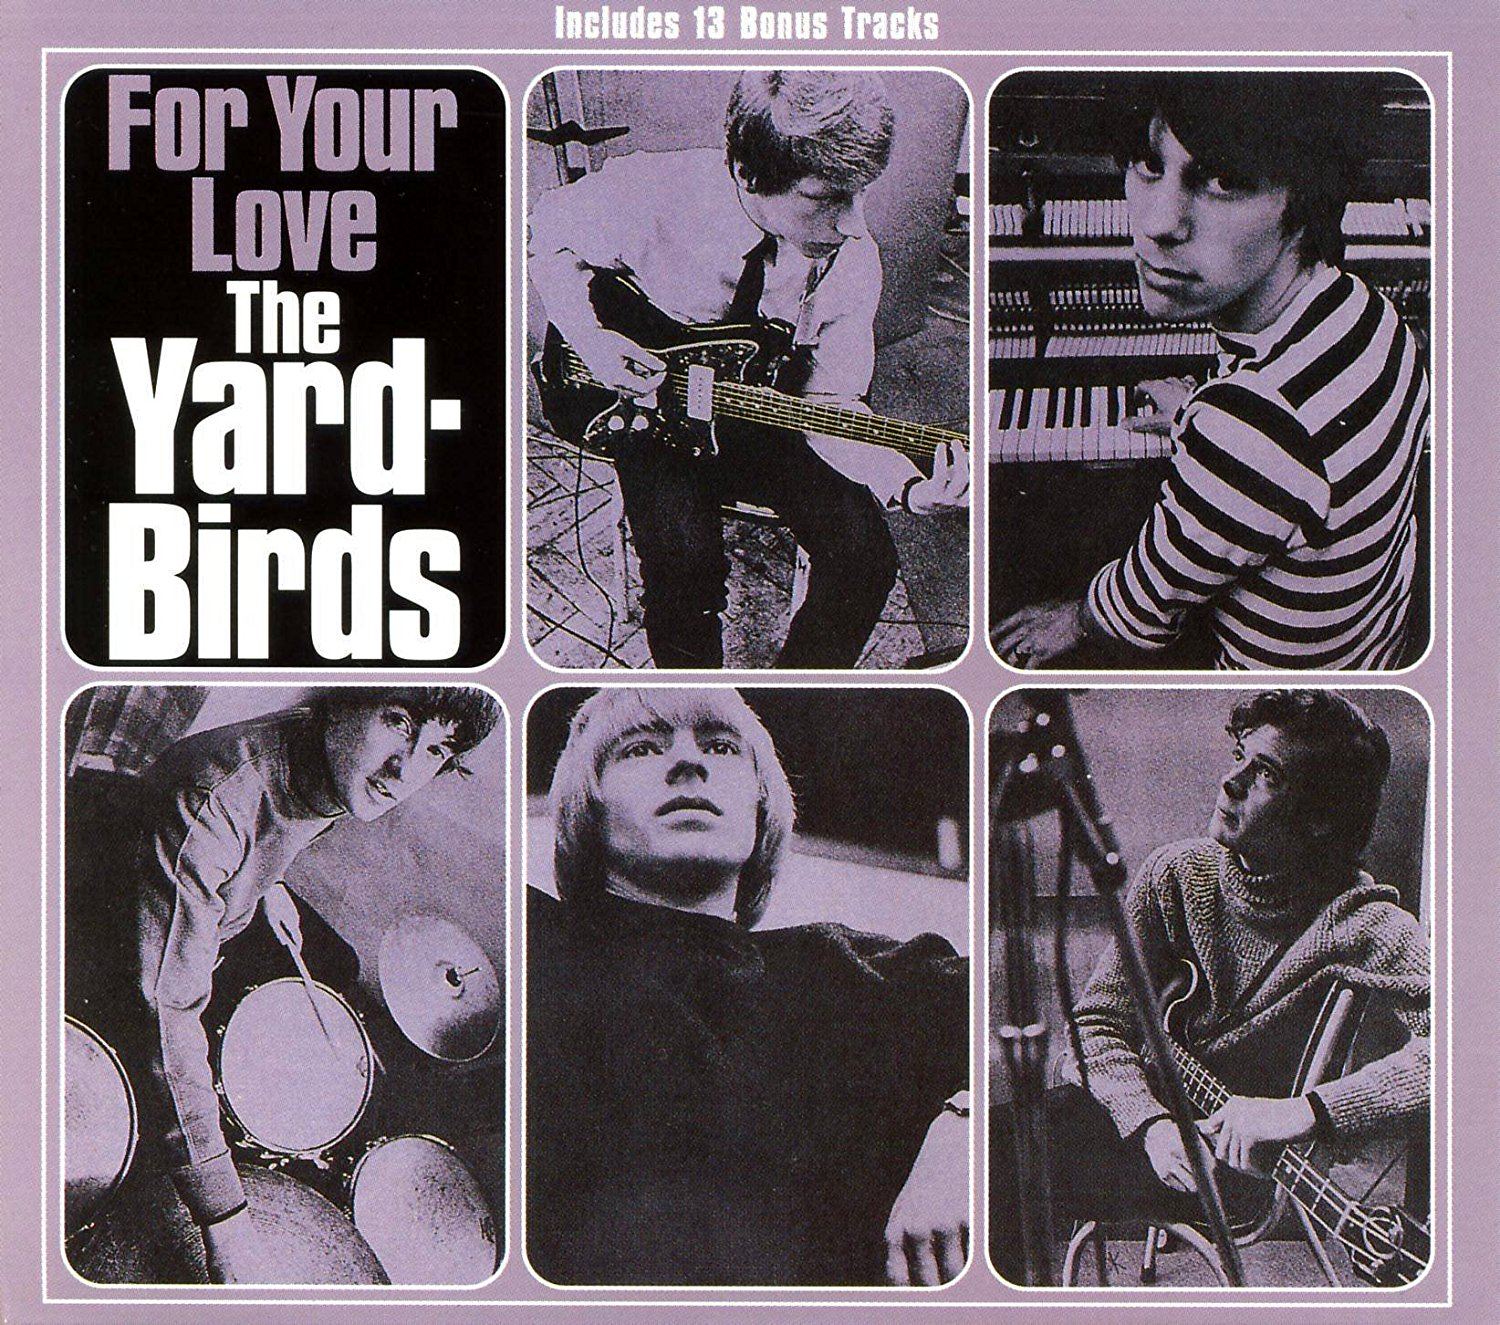 Five Good Covers: For Your Love (The Yardbirds)